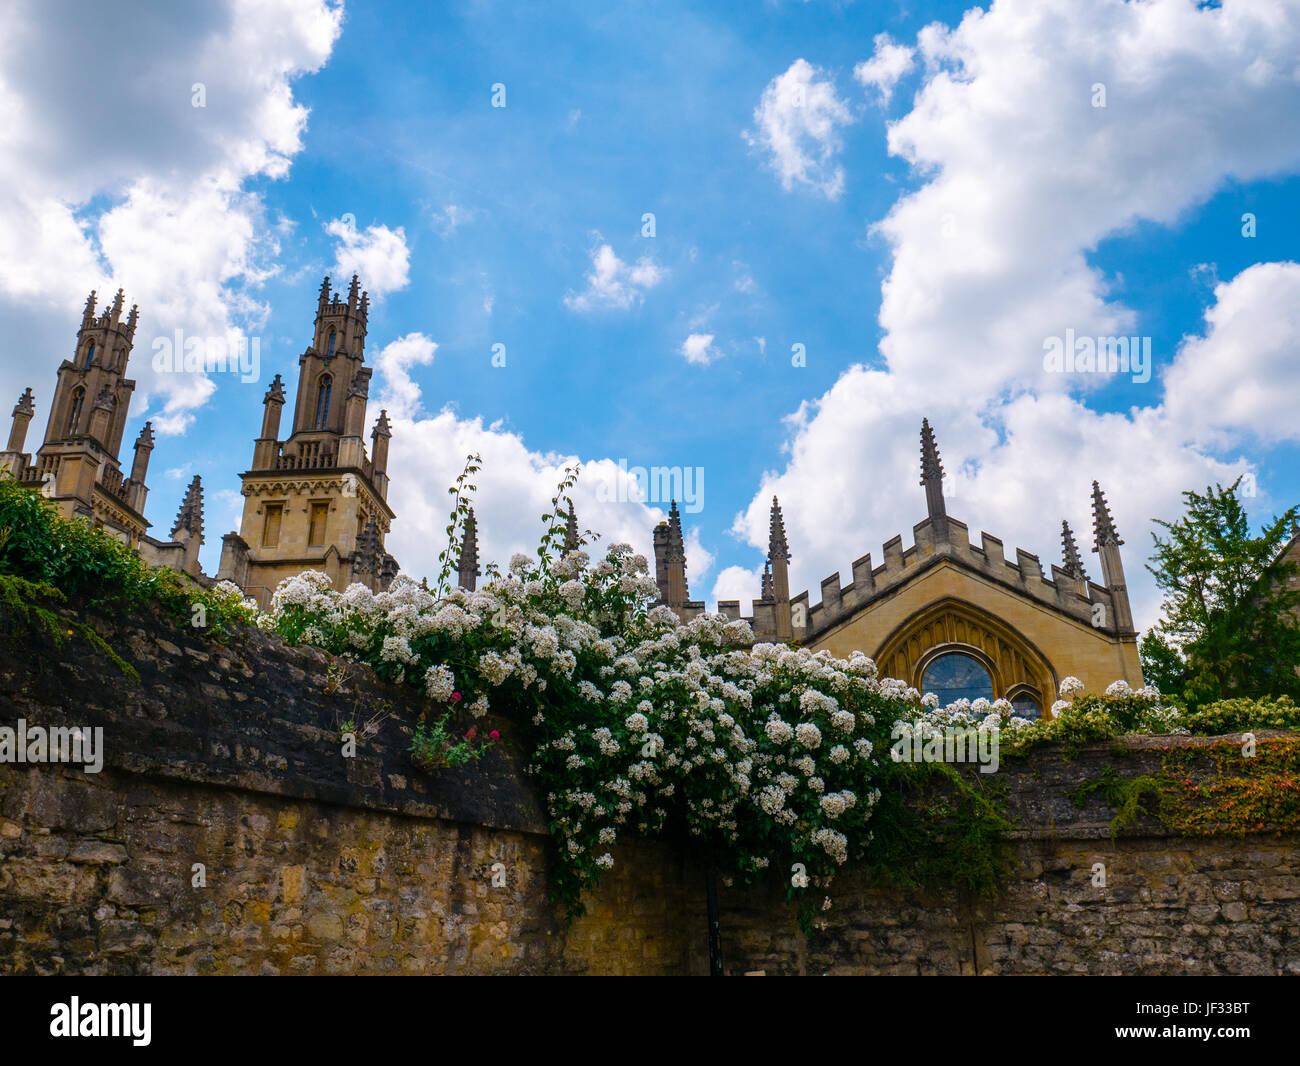 All Souls College from Queens Lane, Oxford, Oxfordshire, England - Stock Image